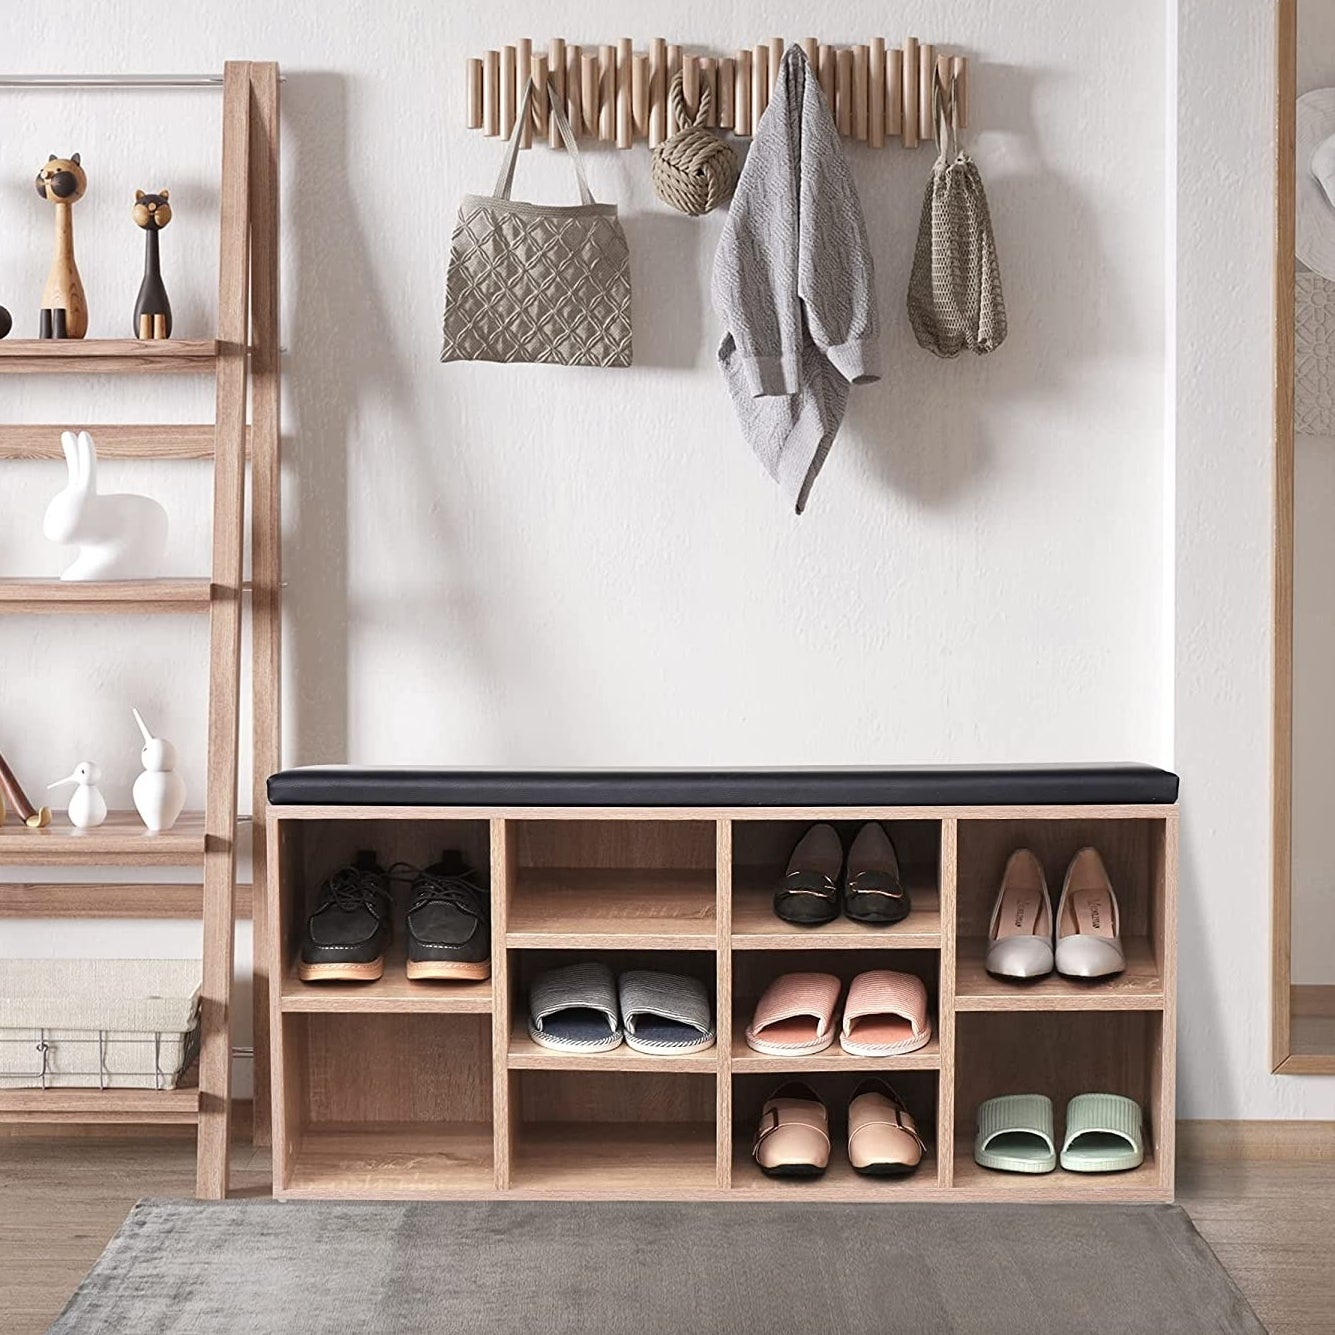 a shoe bench shelf with shoes in them